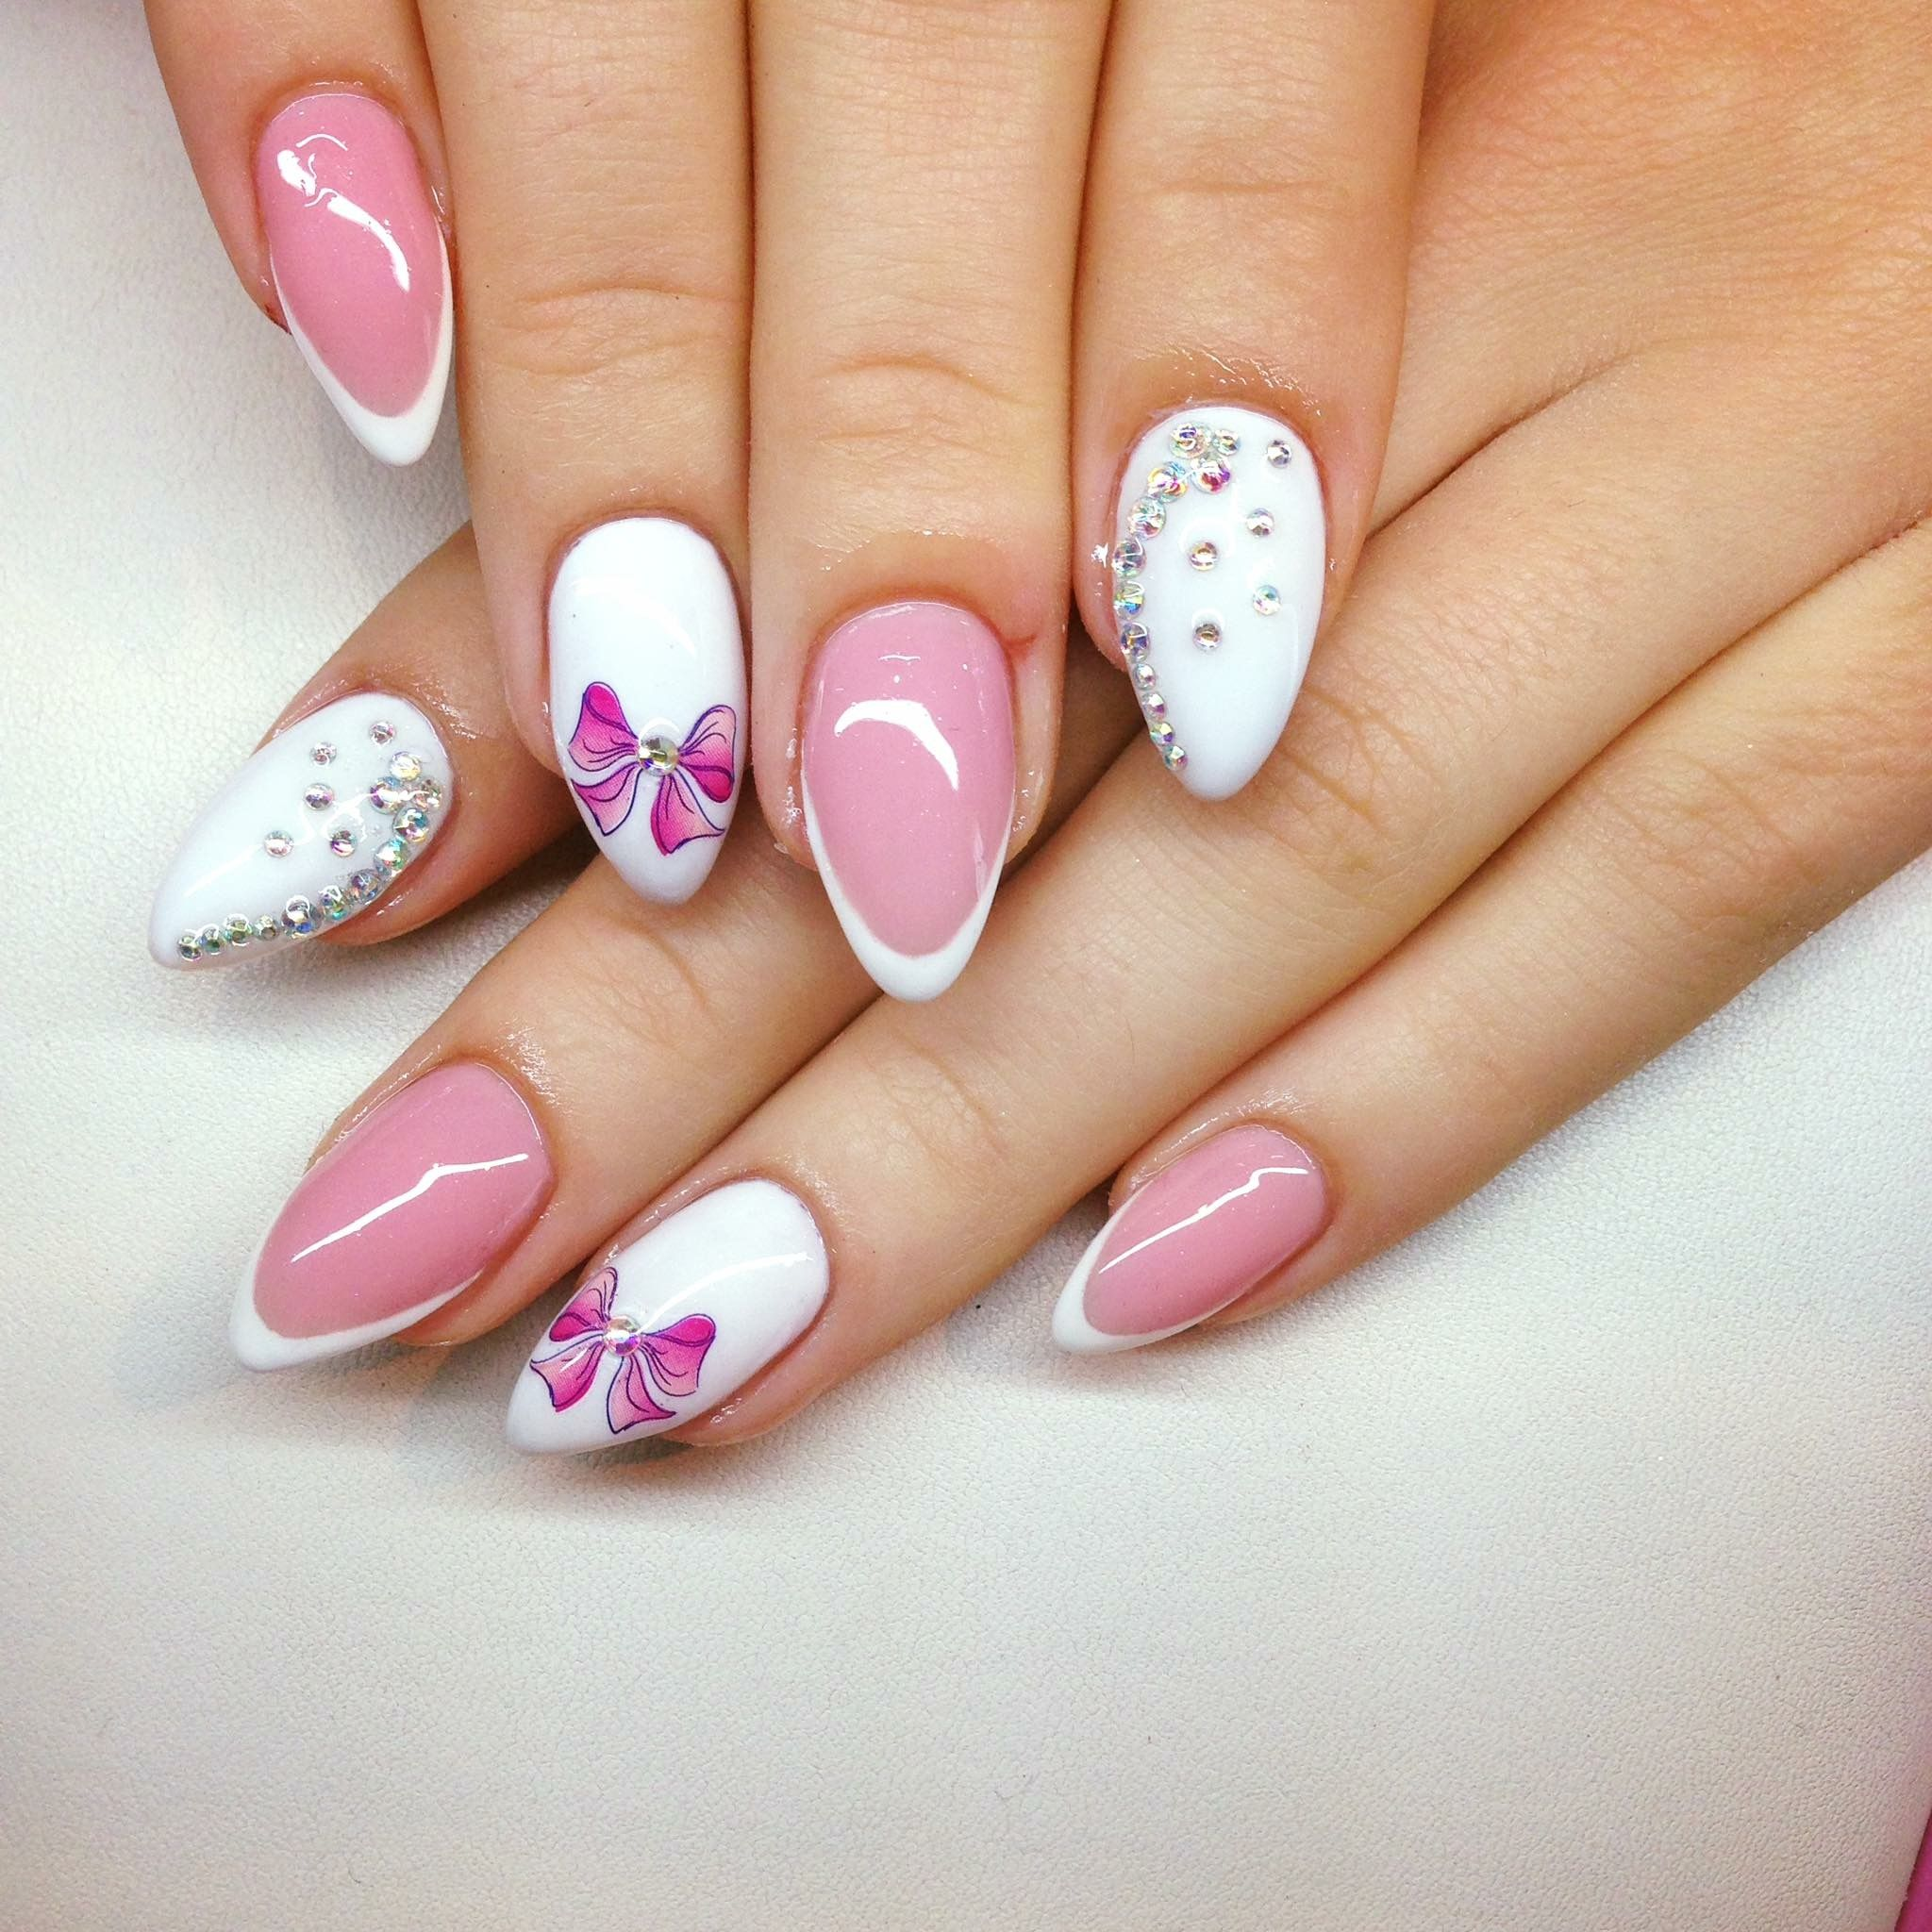 Pin by Catherine Eva on Nails | Pinterest